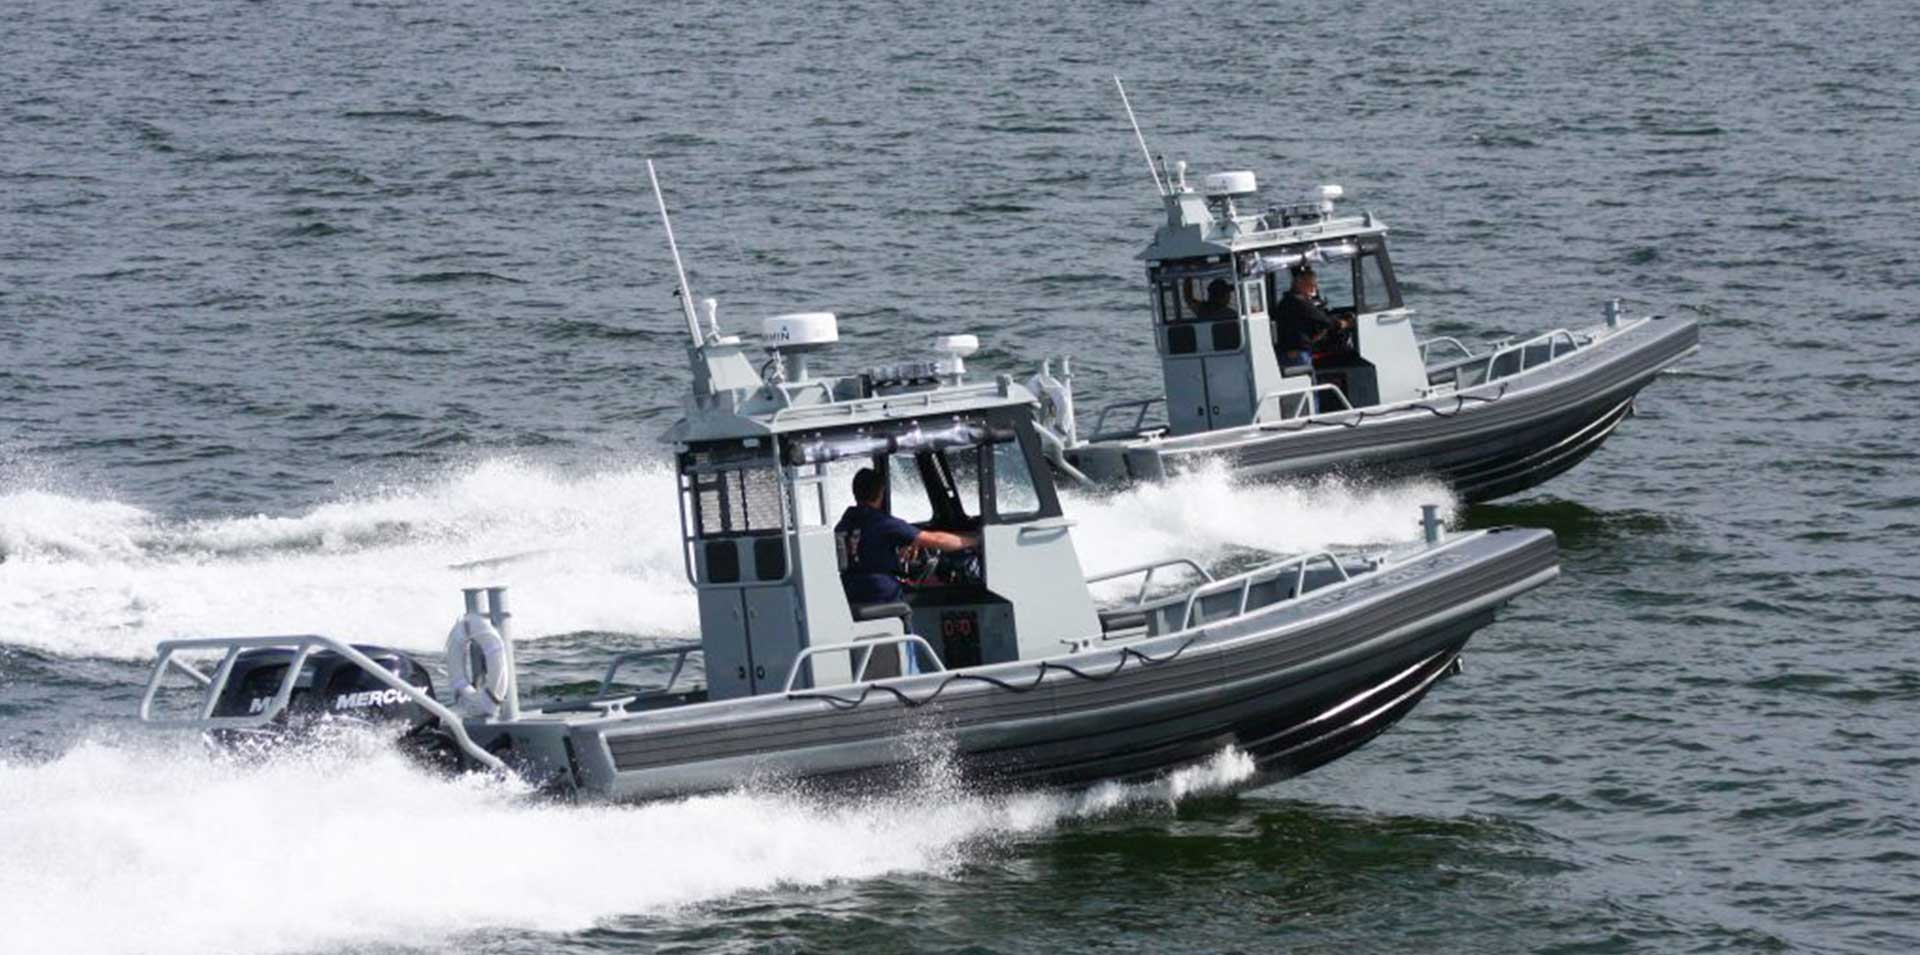 Silver Ships Ambar Series AM 800 military boats on ocean